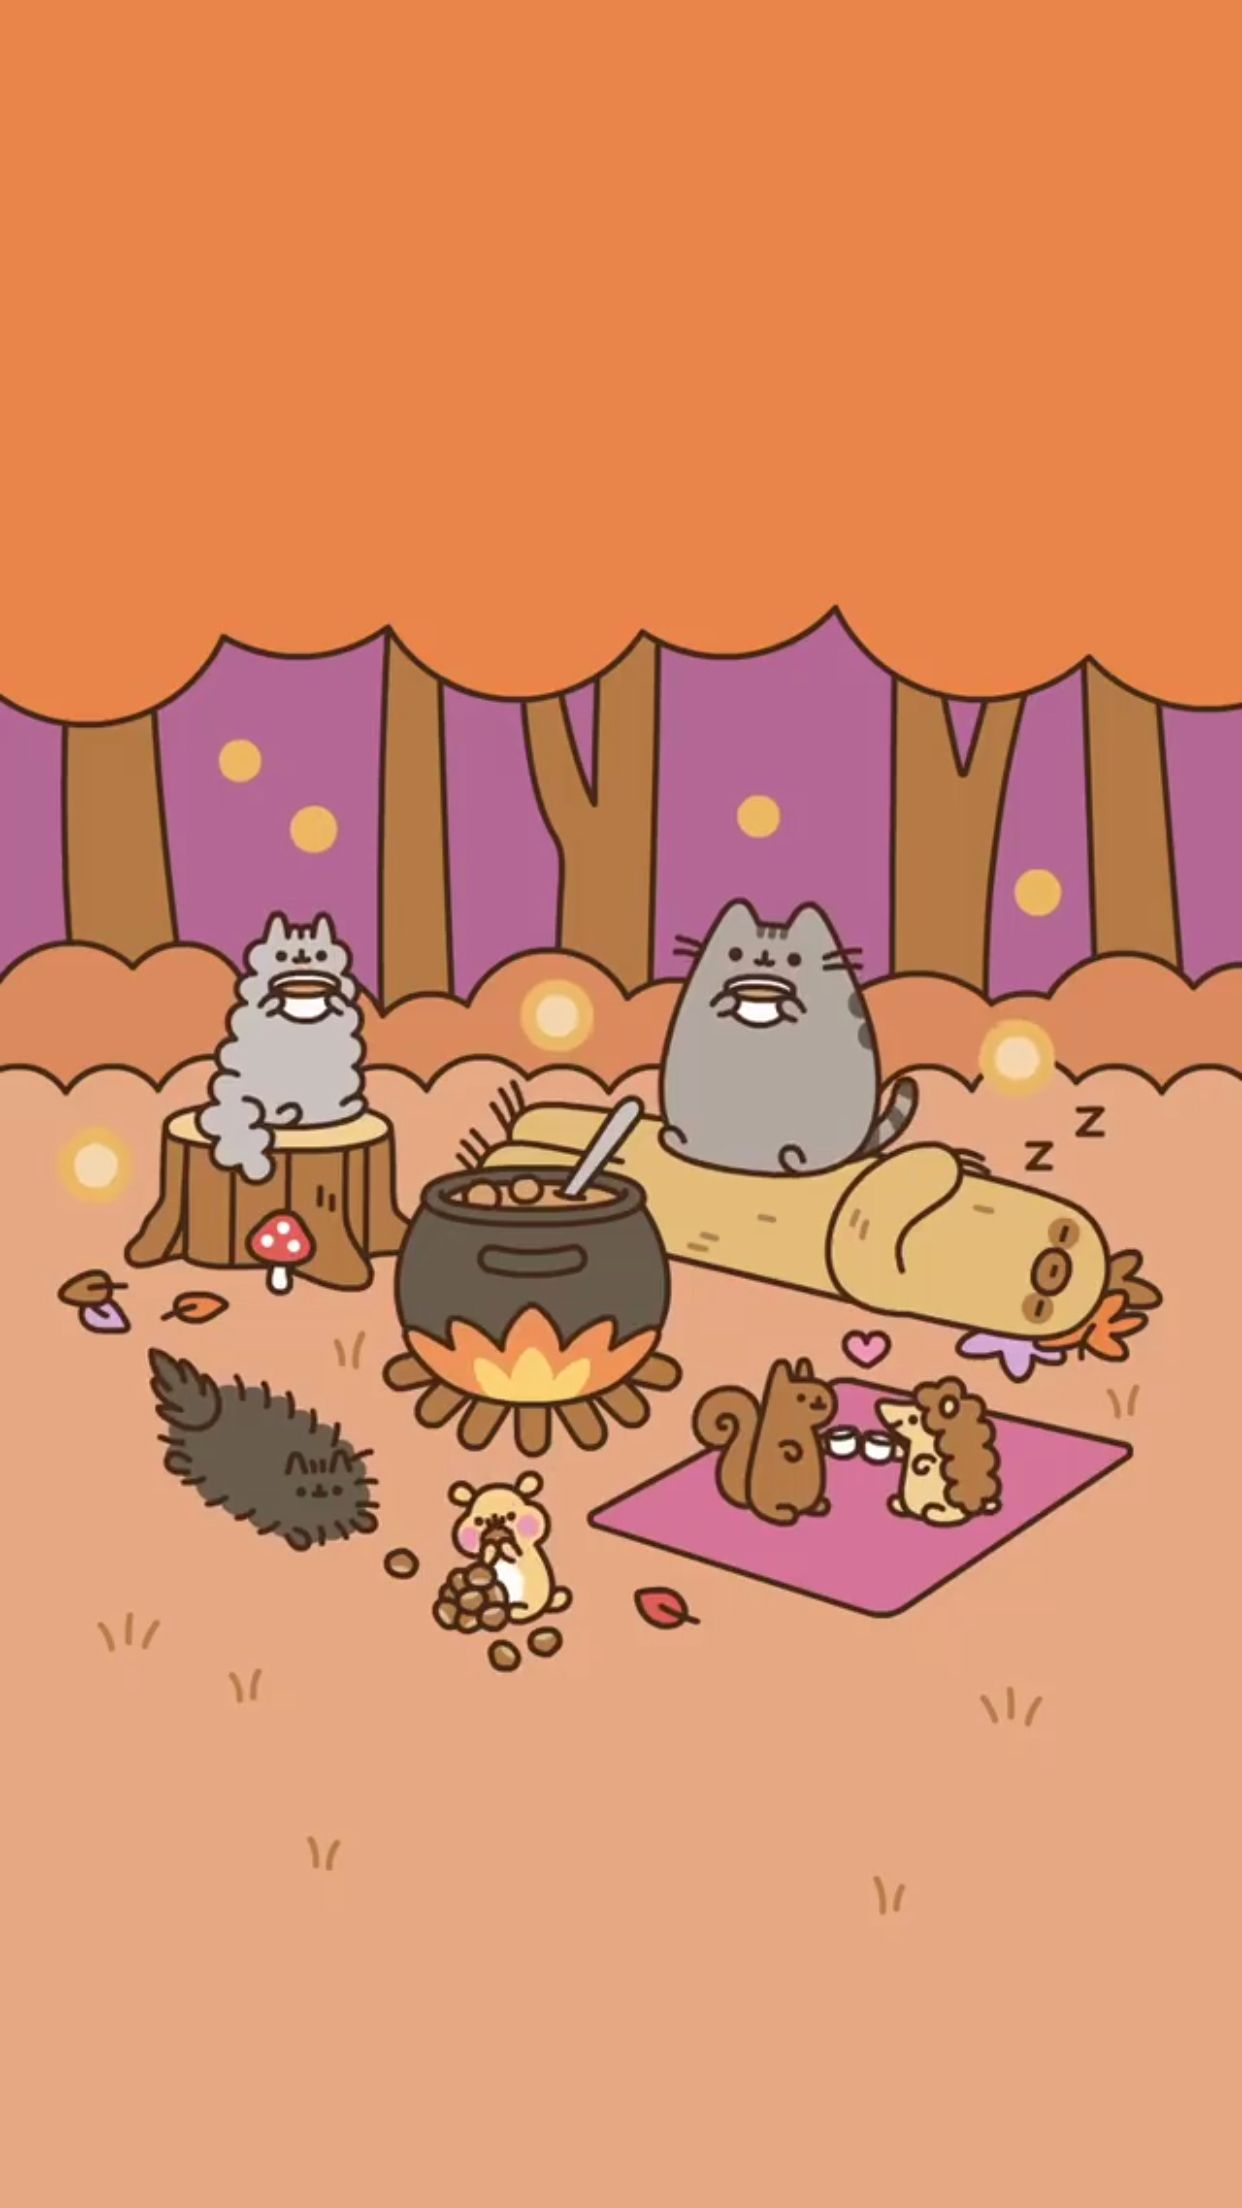 Pusheen Camping Wallpaper Pusheen Cute Pusheen Cat Cat Wallpaper